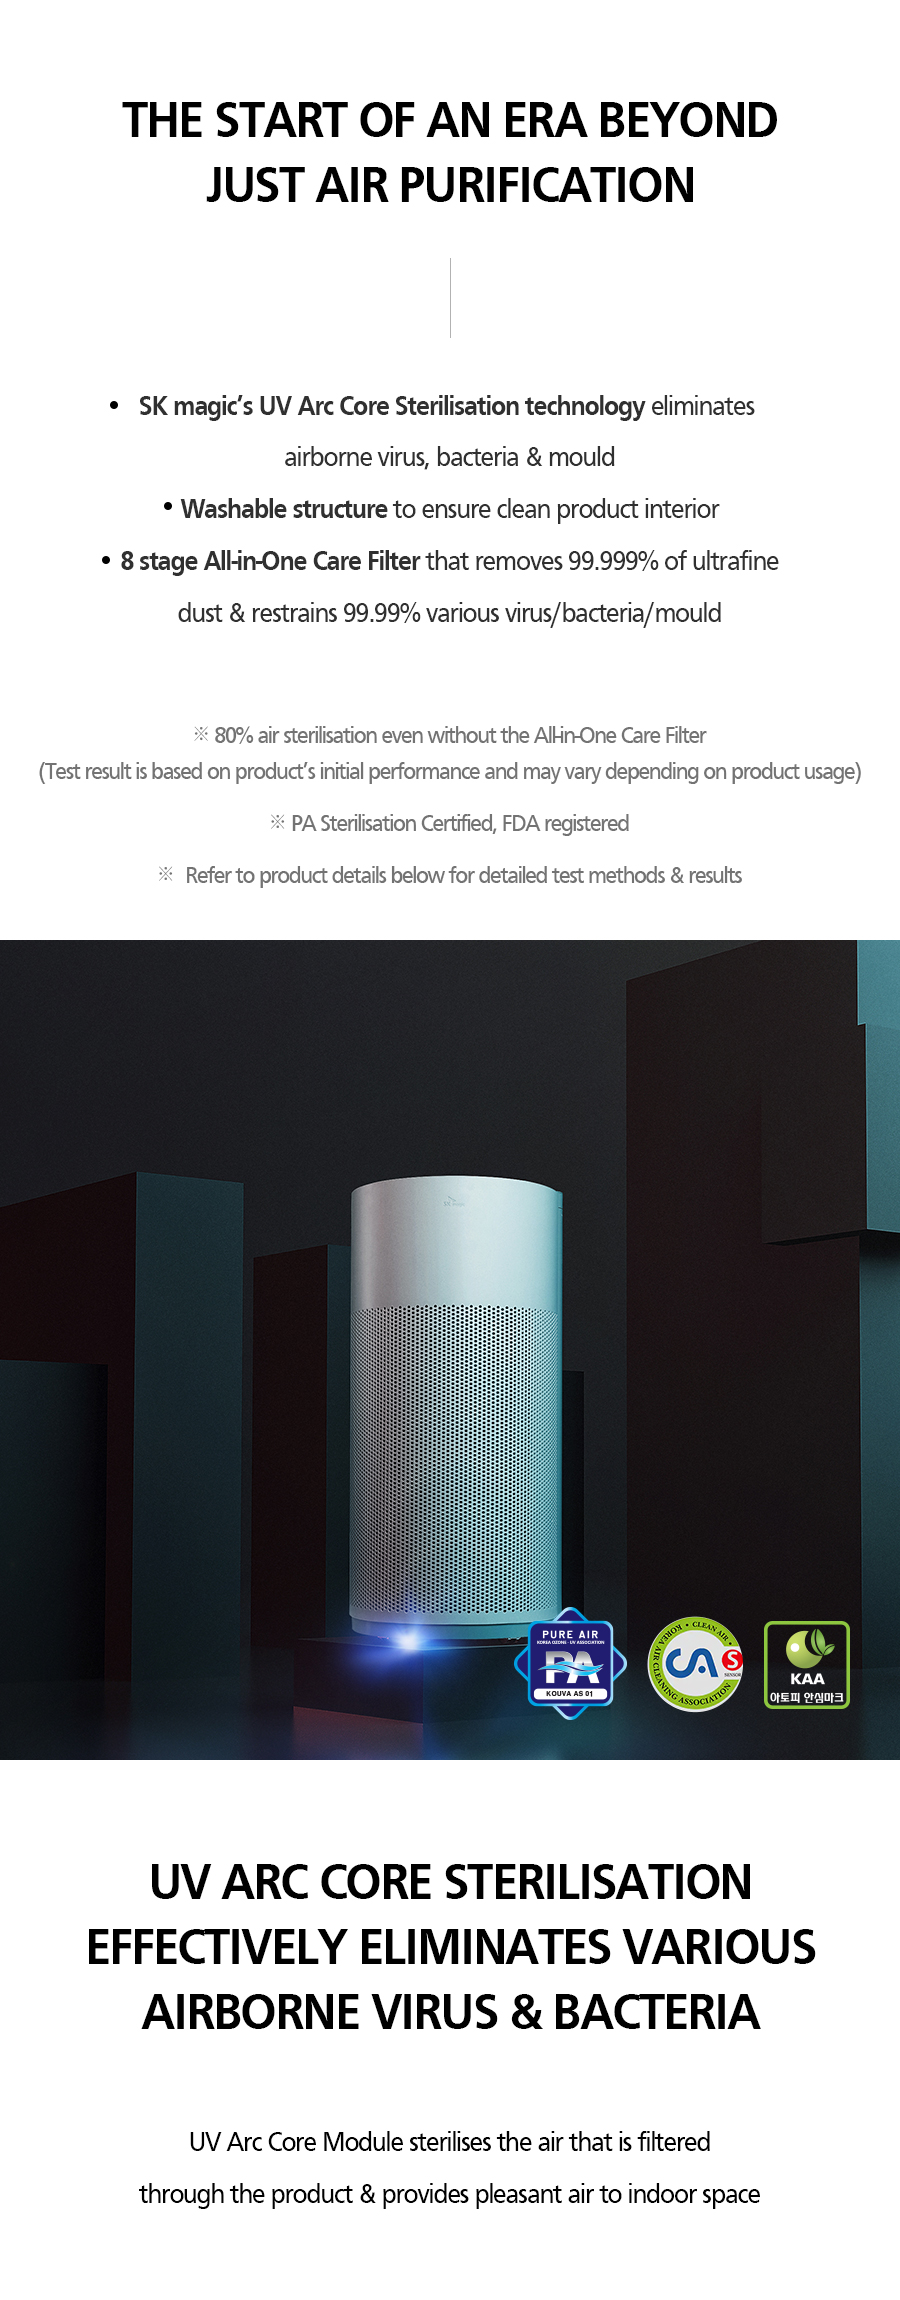 THE START OF AN ERA BEYOND JUST AIR PURIFICATION • SK magic's UV Arc Core Sterilization technology eliminates airborne virus, bacteria & mould • Washable structure to ensure clean product interior • 8 stage All-in-One Care Filter that removes 99.999% of ultrafine dust & restraints 99.99% various virus/bacteria/mould